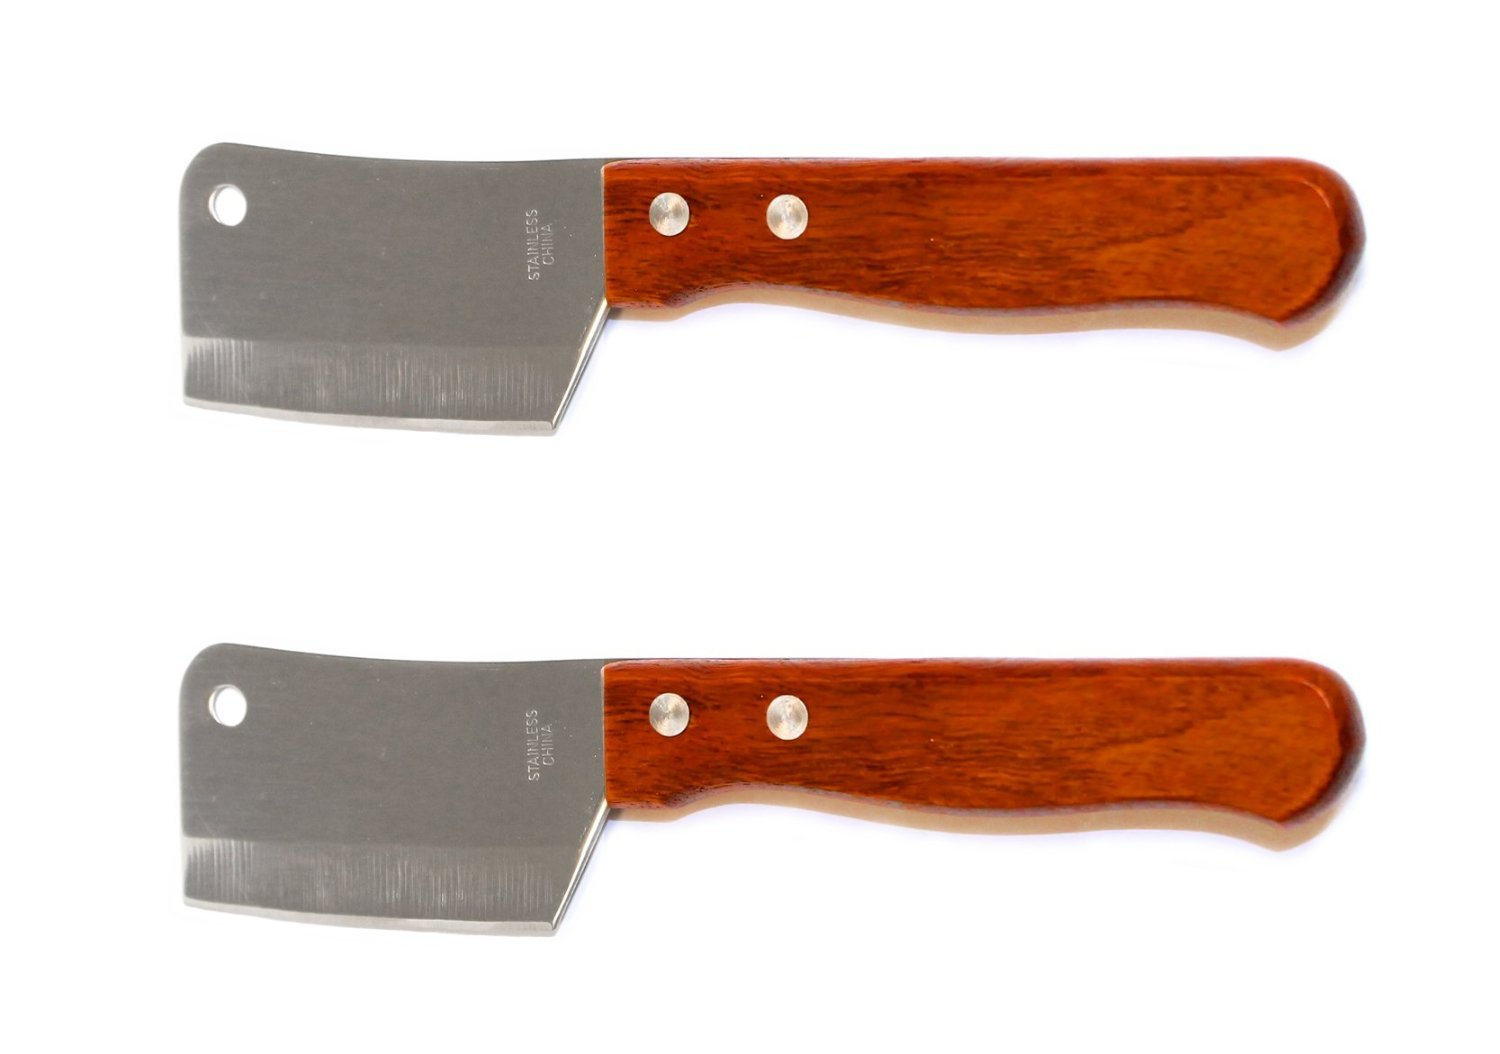 Set of 2 Mini Chop Knives, Cleaver Style Mini Chopping Knives, Stainless Steel Blade, Wood Handle